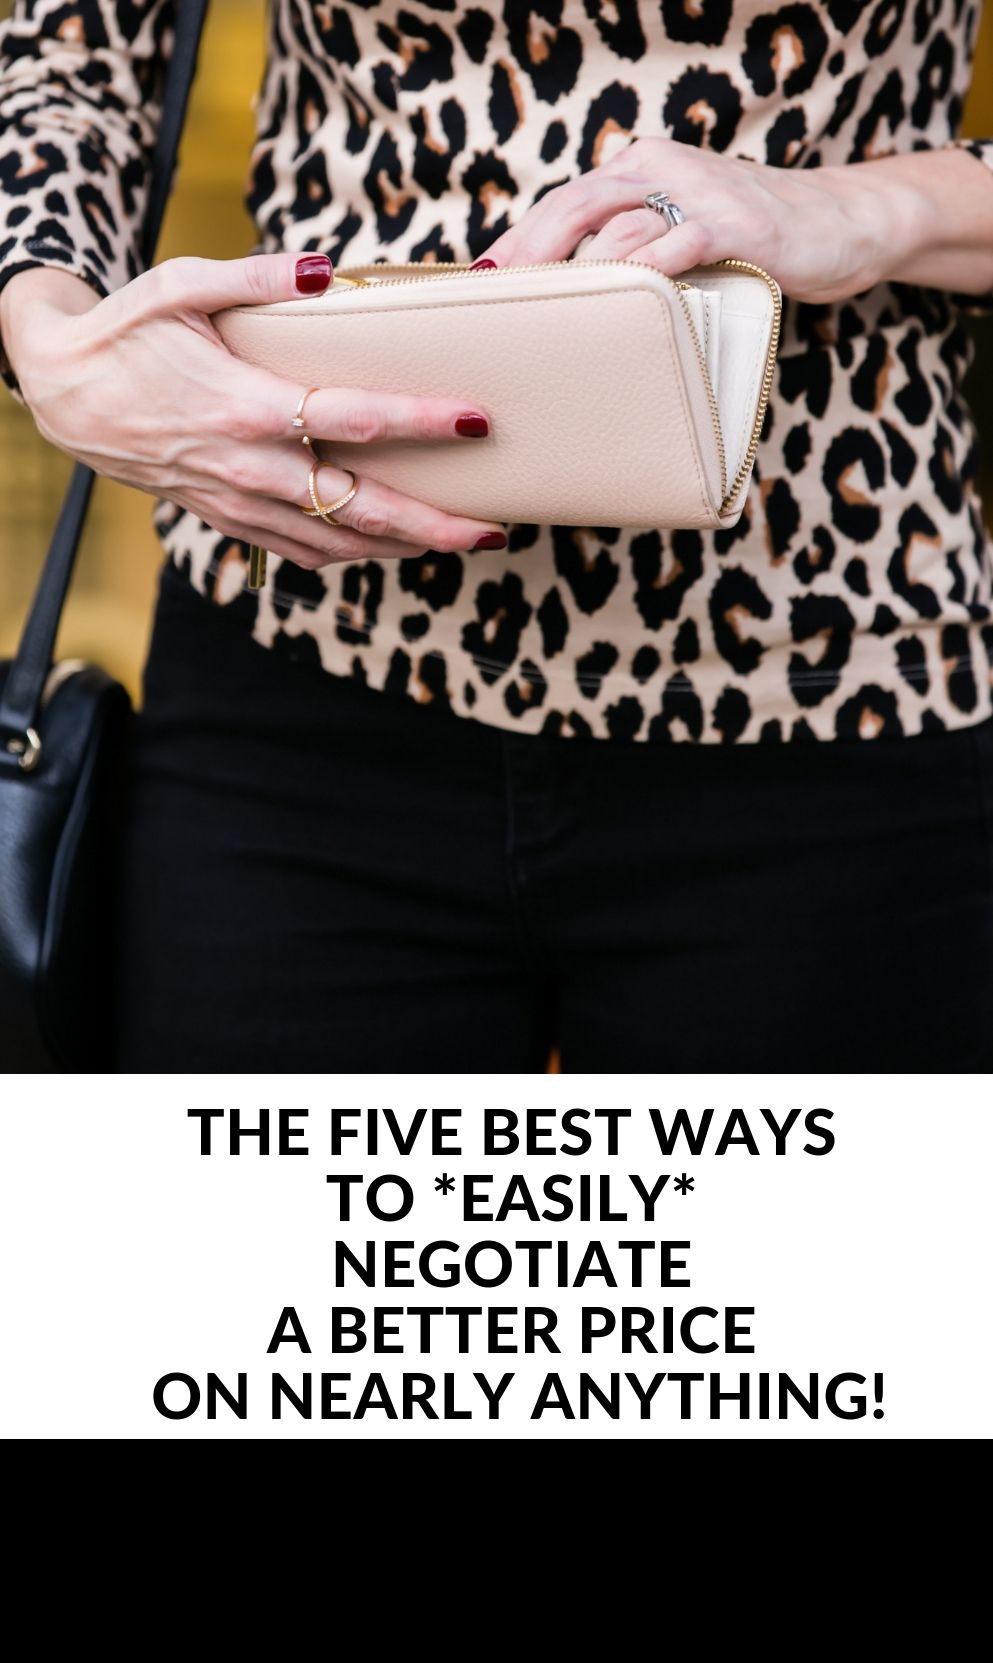 Five really easy ways to negotiate a better price on nearly anything